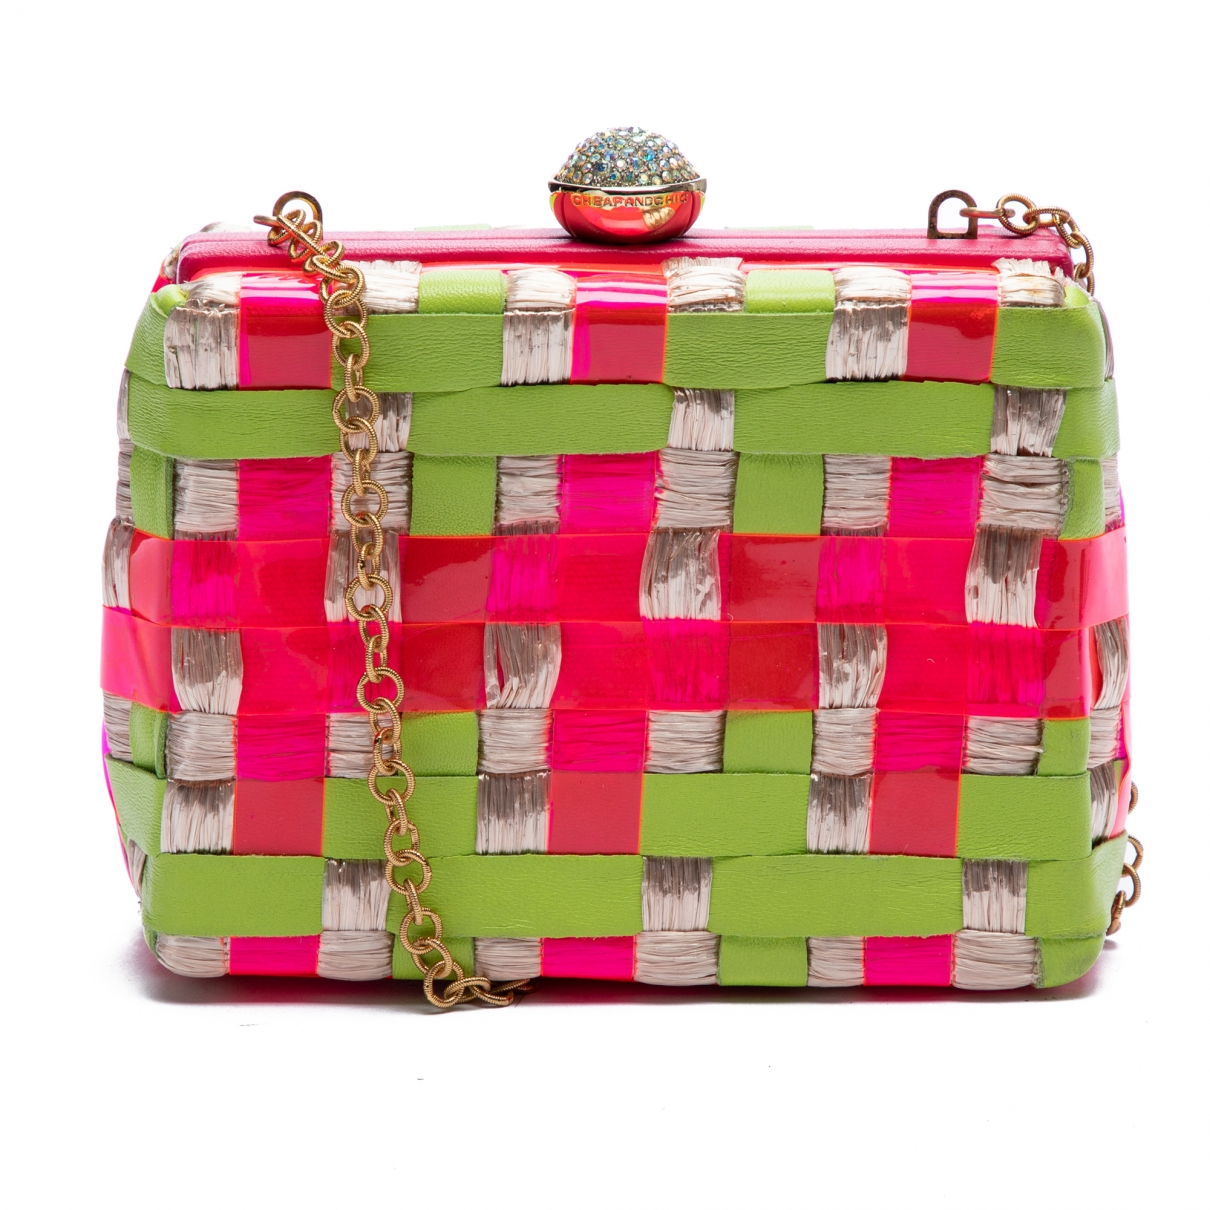 Moschino Cheap And Chic \N Multicolour Clutch bag for Women \N